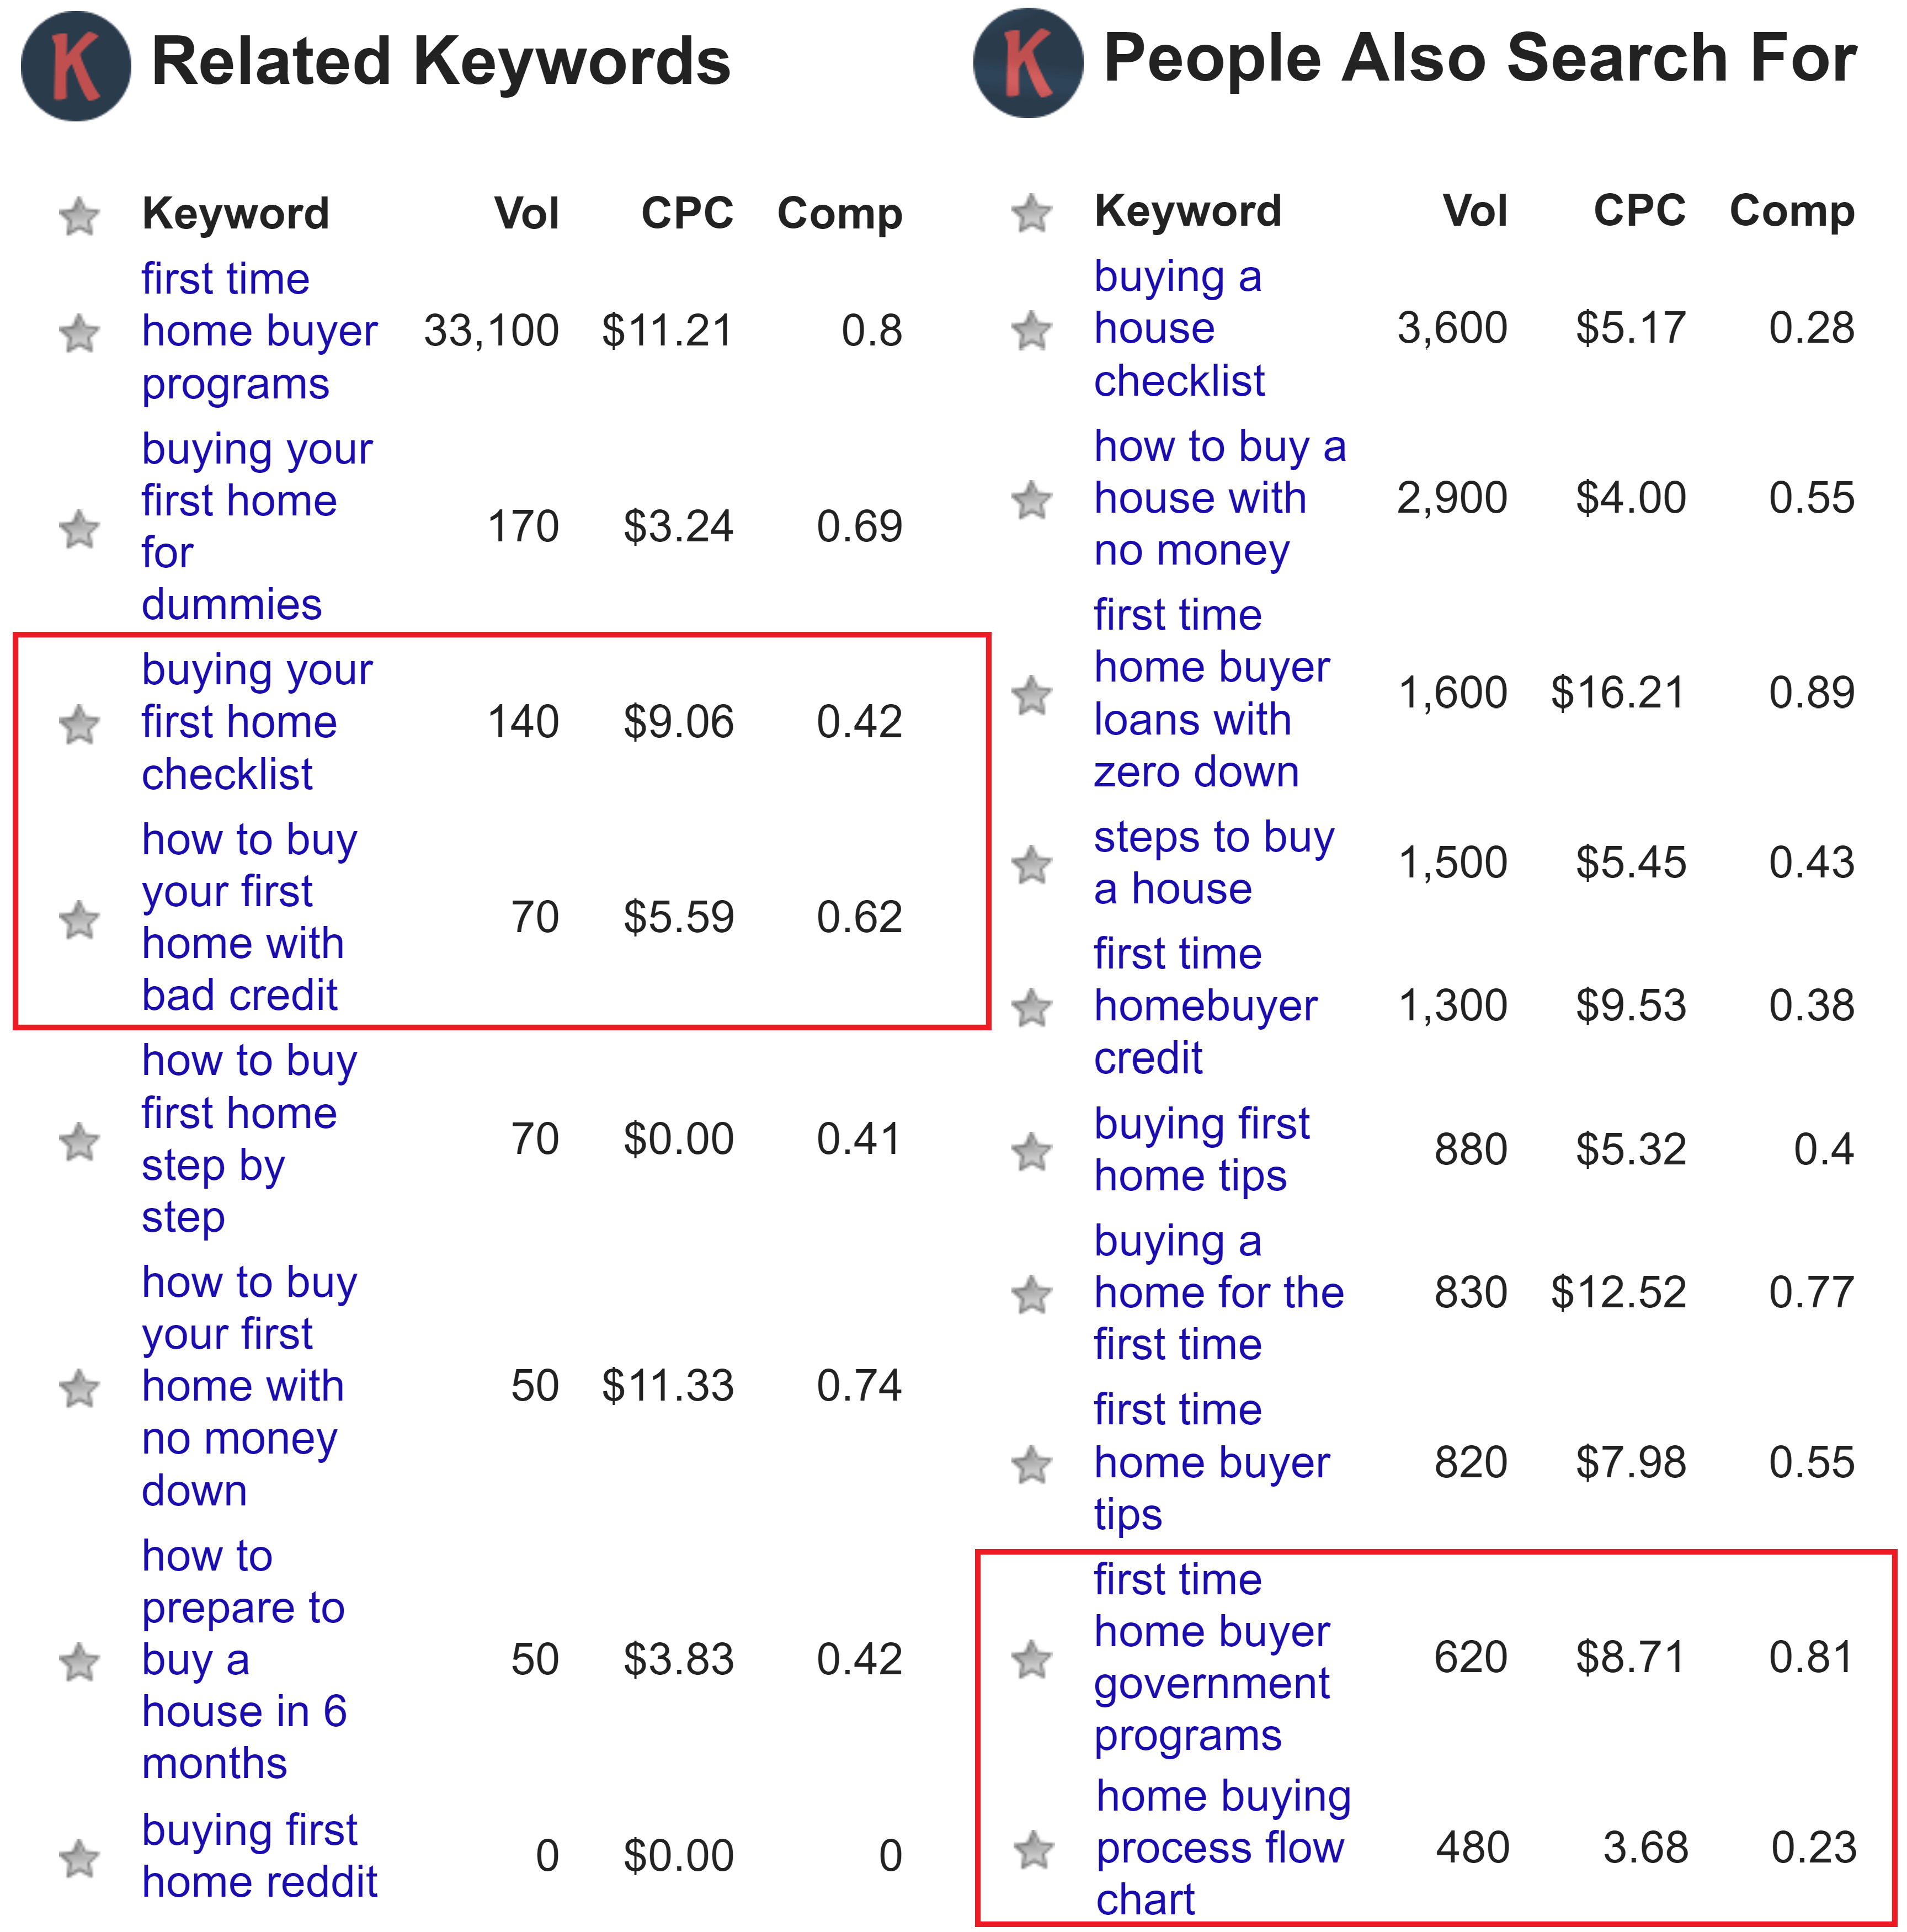 Related Keywords displayed by Keywords Everywhere Analytics tool for real estate SEO search results.